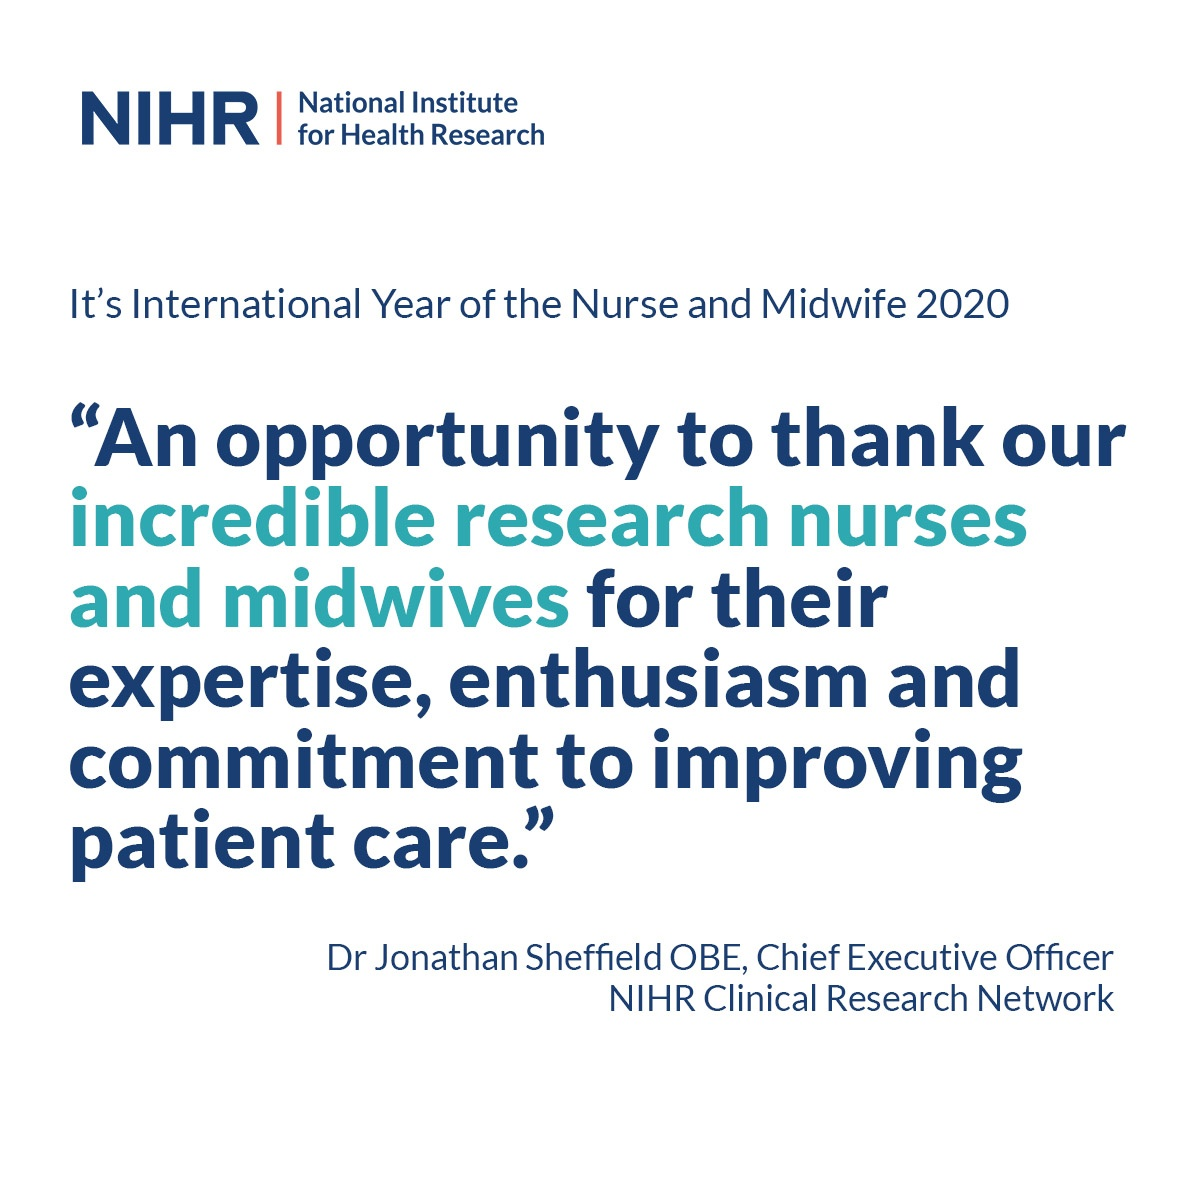 Huge thank you to all the incredible nurses across the East currently doing such vital work, including our fantastic #NHSresearch nurses who have moved to front line posts & those still working on studies #InternationalYearOfTheNurseAndMidwife